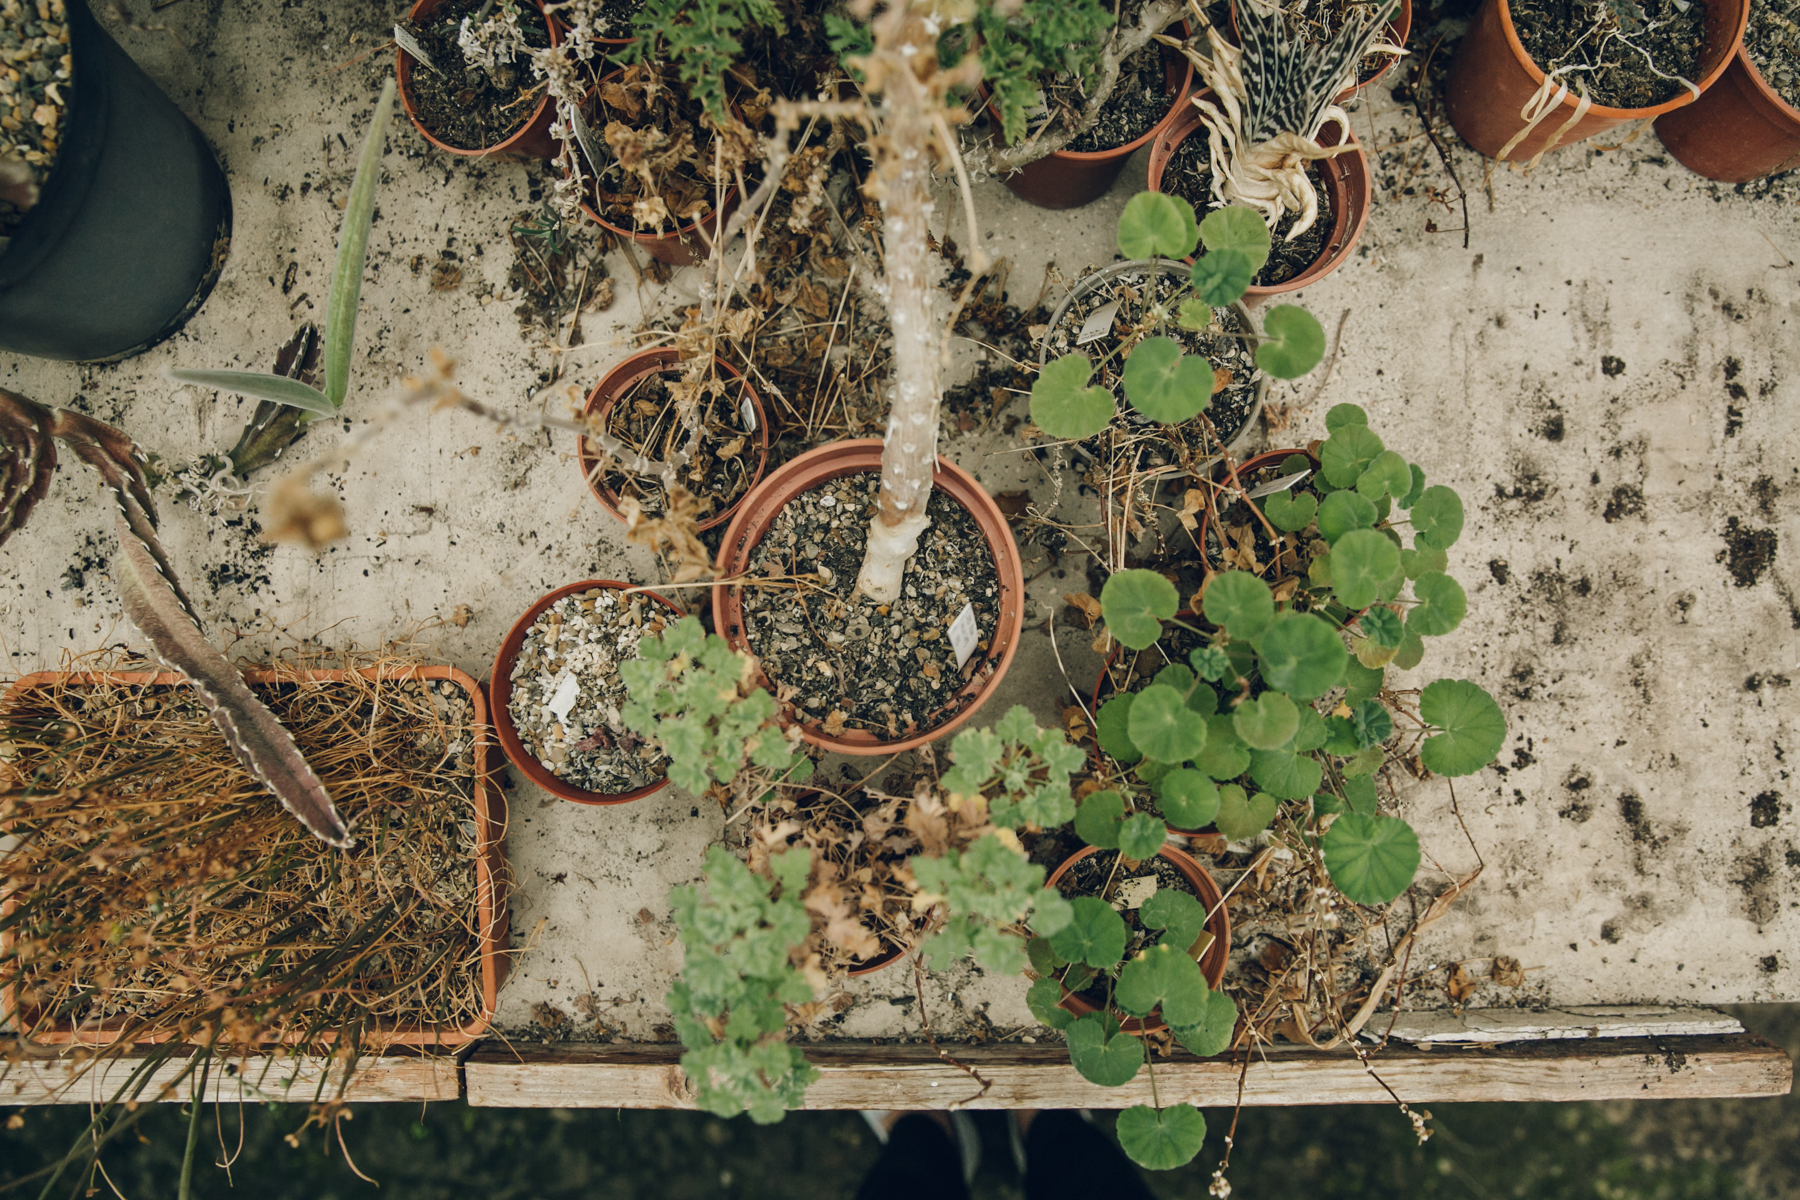 Looking down on plants in the potting shed